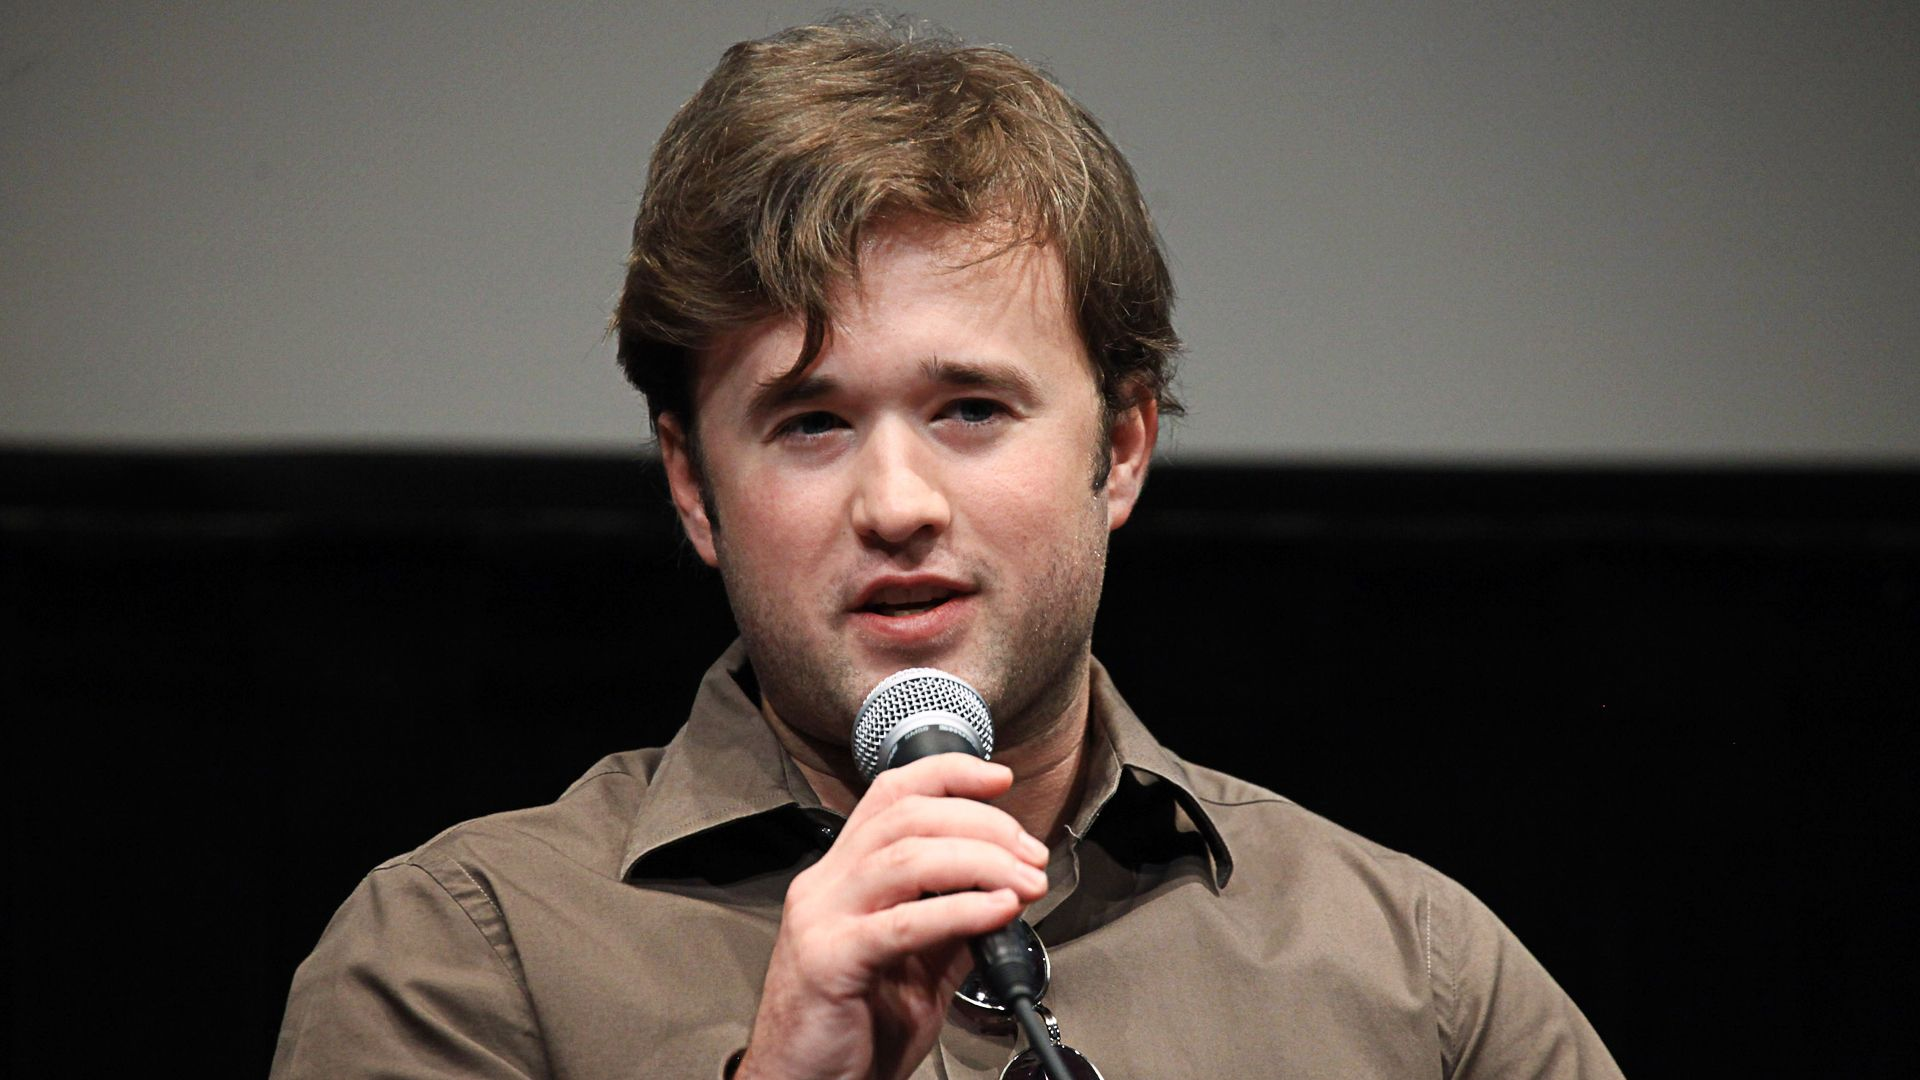 Haley joel osment nudes